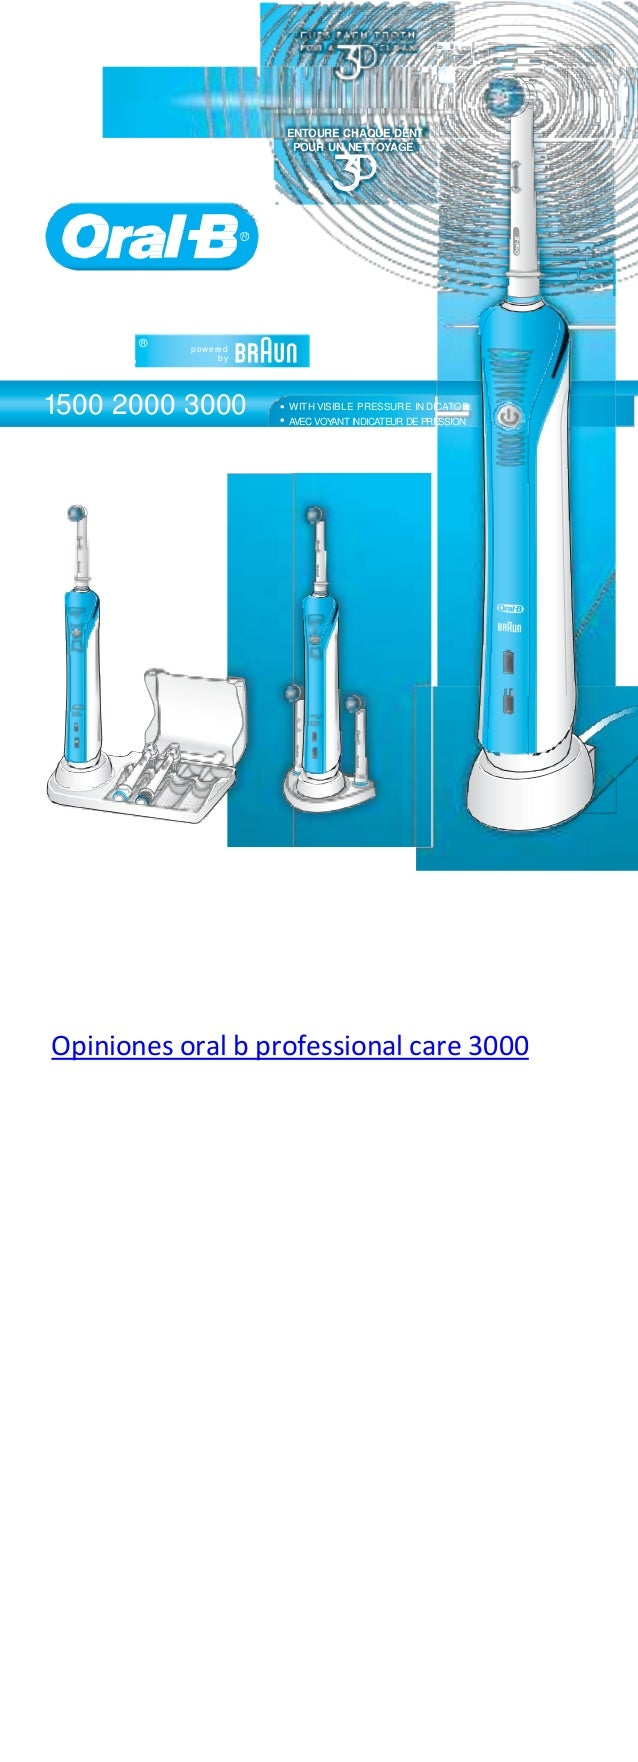 powered by Oral-B WITH VISIBLE PRESSURE IN AVEC VOYANT INDICATEUR DE PRESSION DICATOR PROFESSIONAL CARE® Oral-B Oral-B Ora...